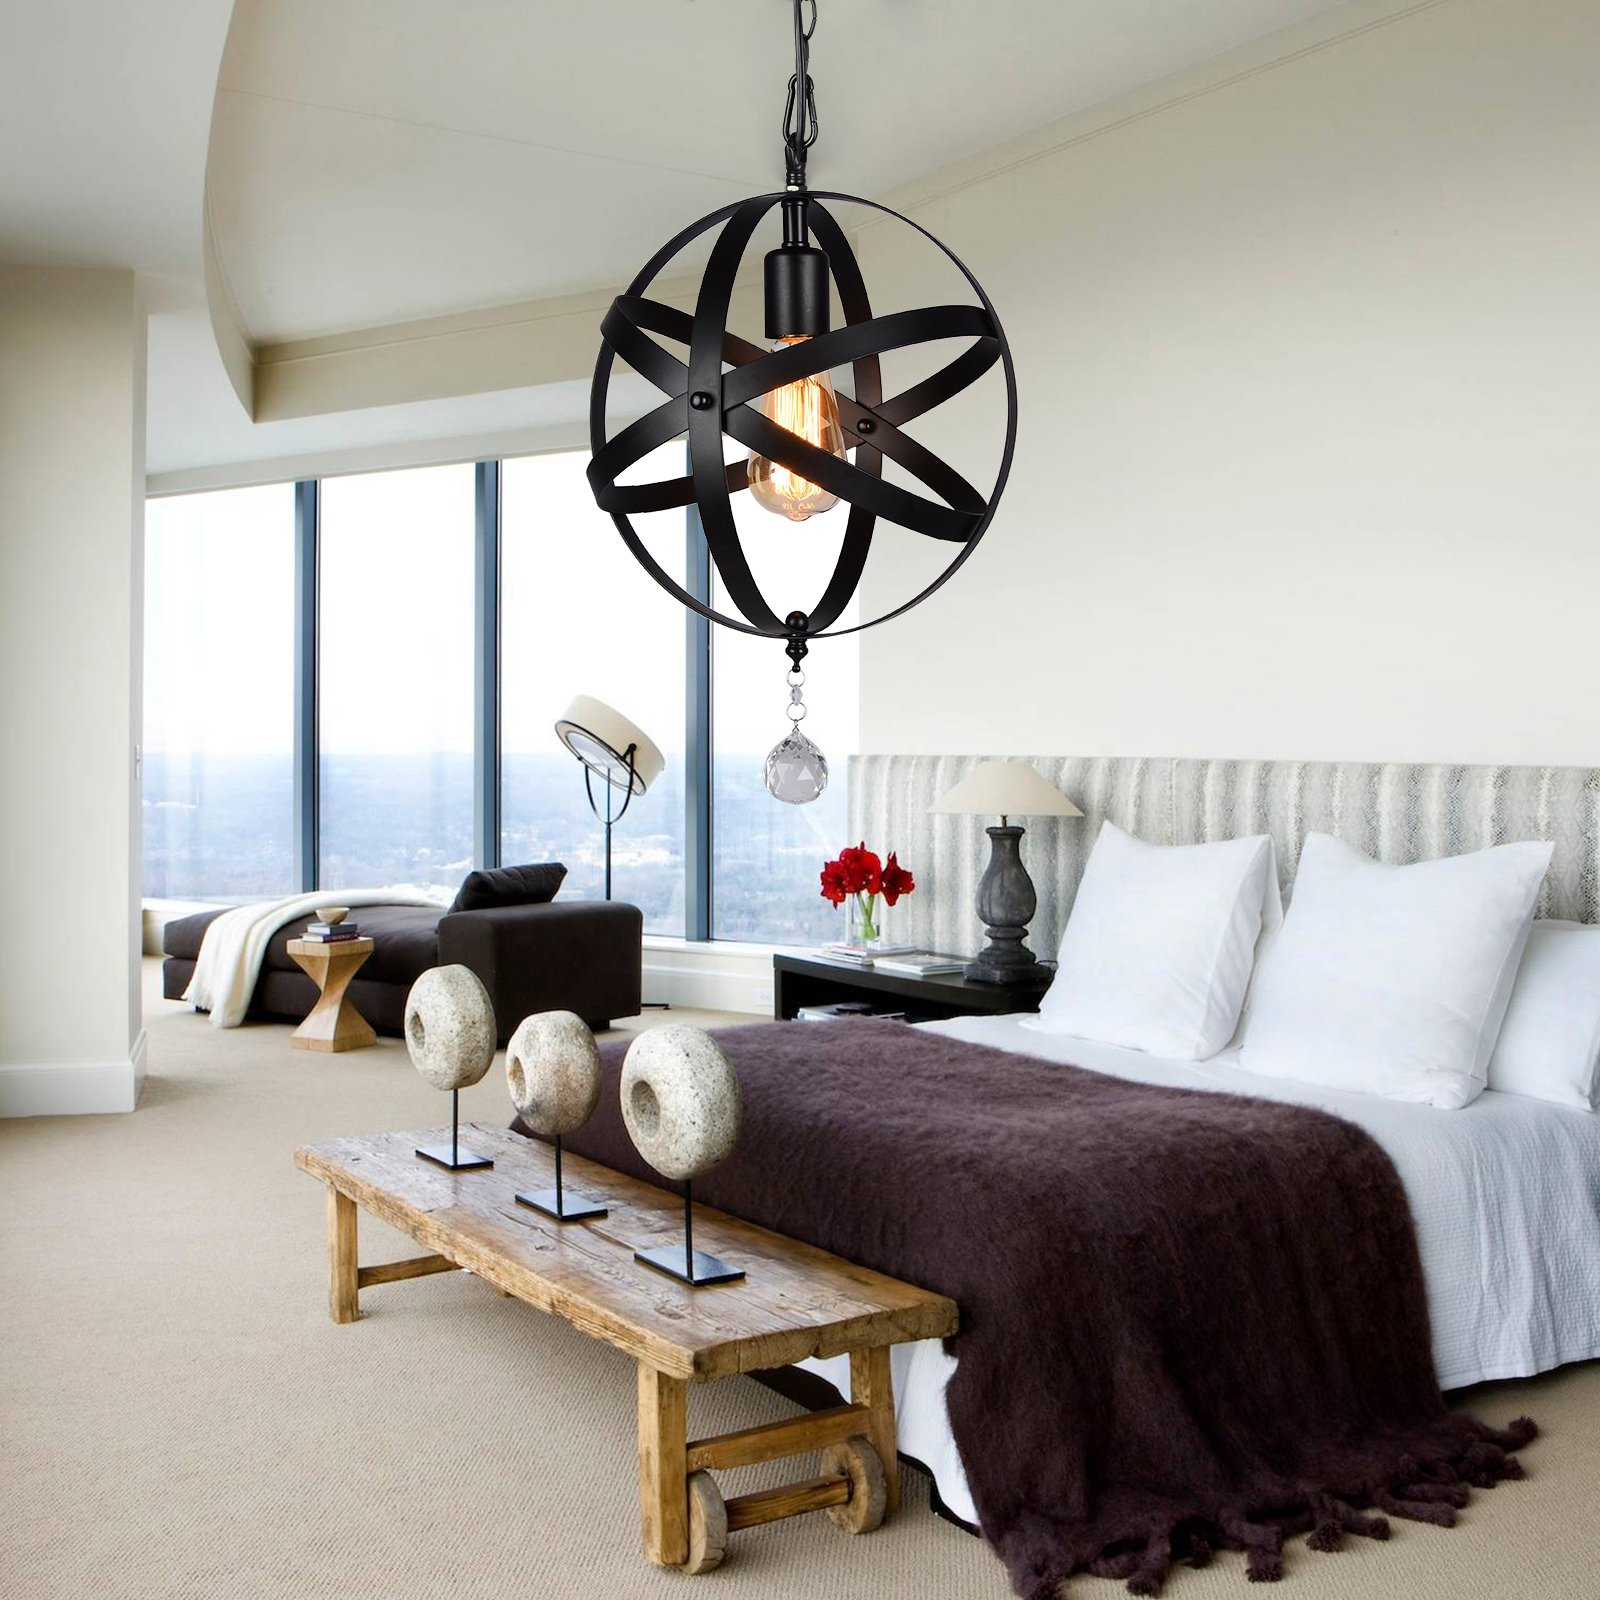 HMVPL Plug-in Industrial Globe Pendant Lights with 16.4 Ft Hanging Cord and Dimmable On/Off Switch, Vintage Metal Spherical Lantern Chandelier Ceiling Light Fixture by HMVPL (Image #3)